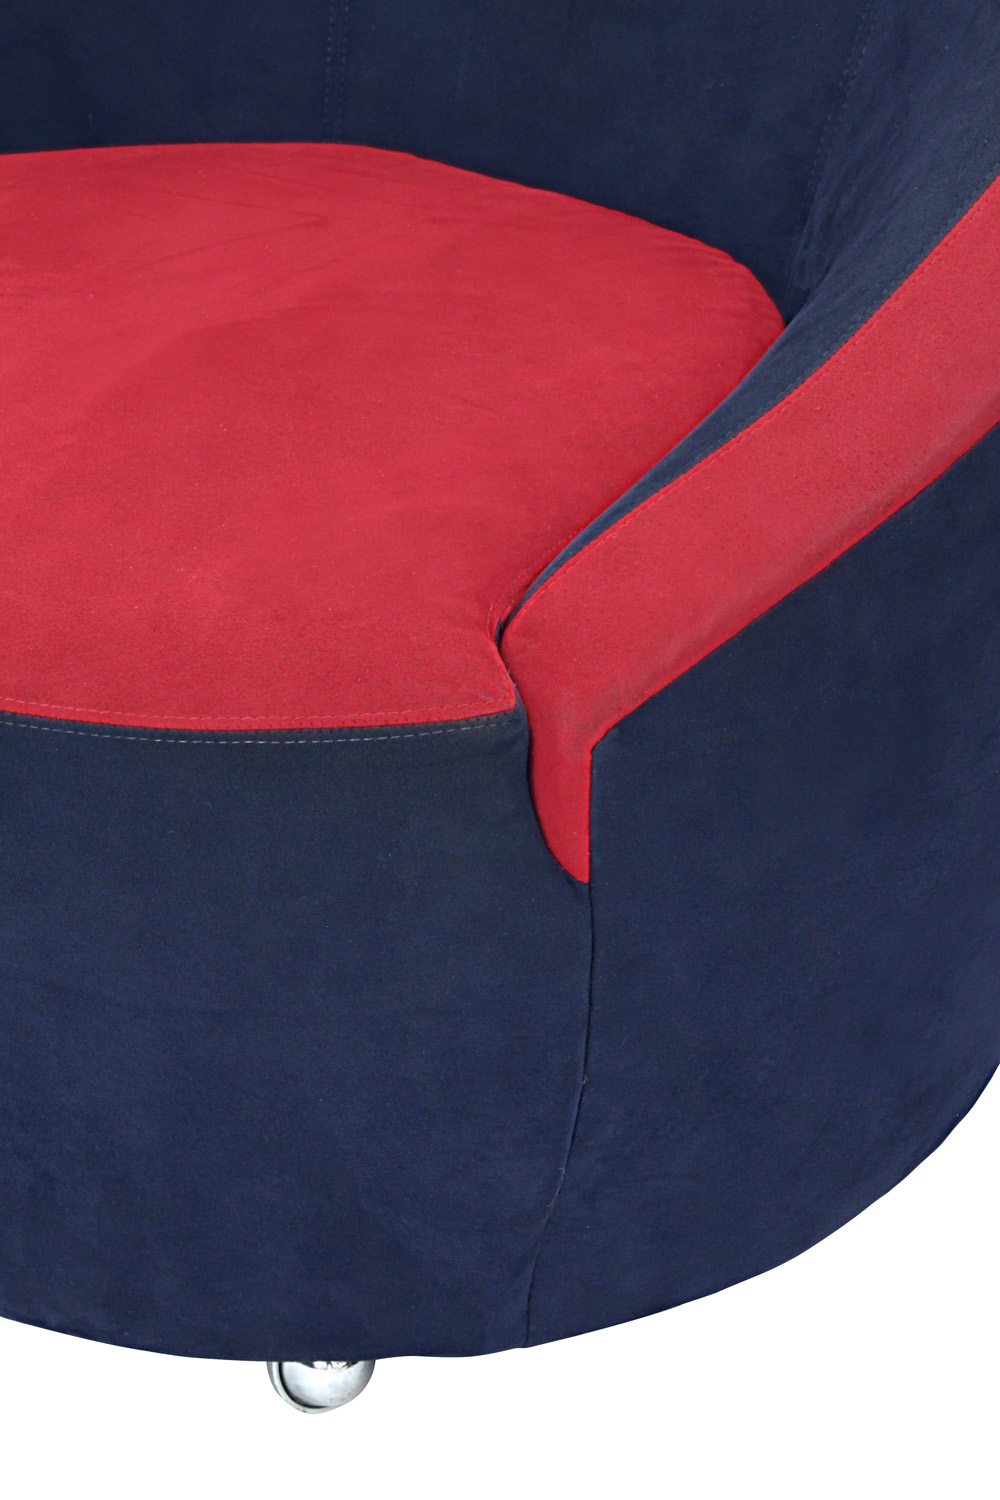 Kagan 35 swiveling Nautilus loungechair88 detail4 hires.jpg